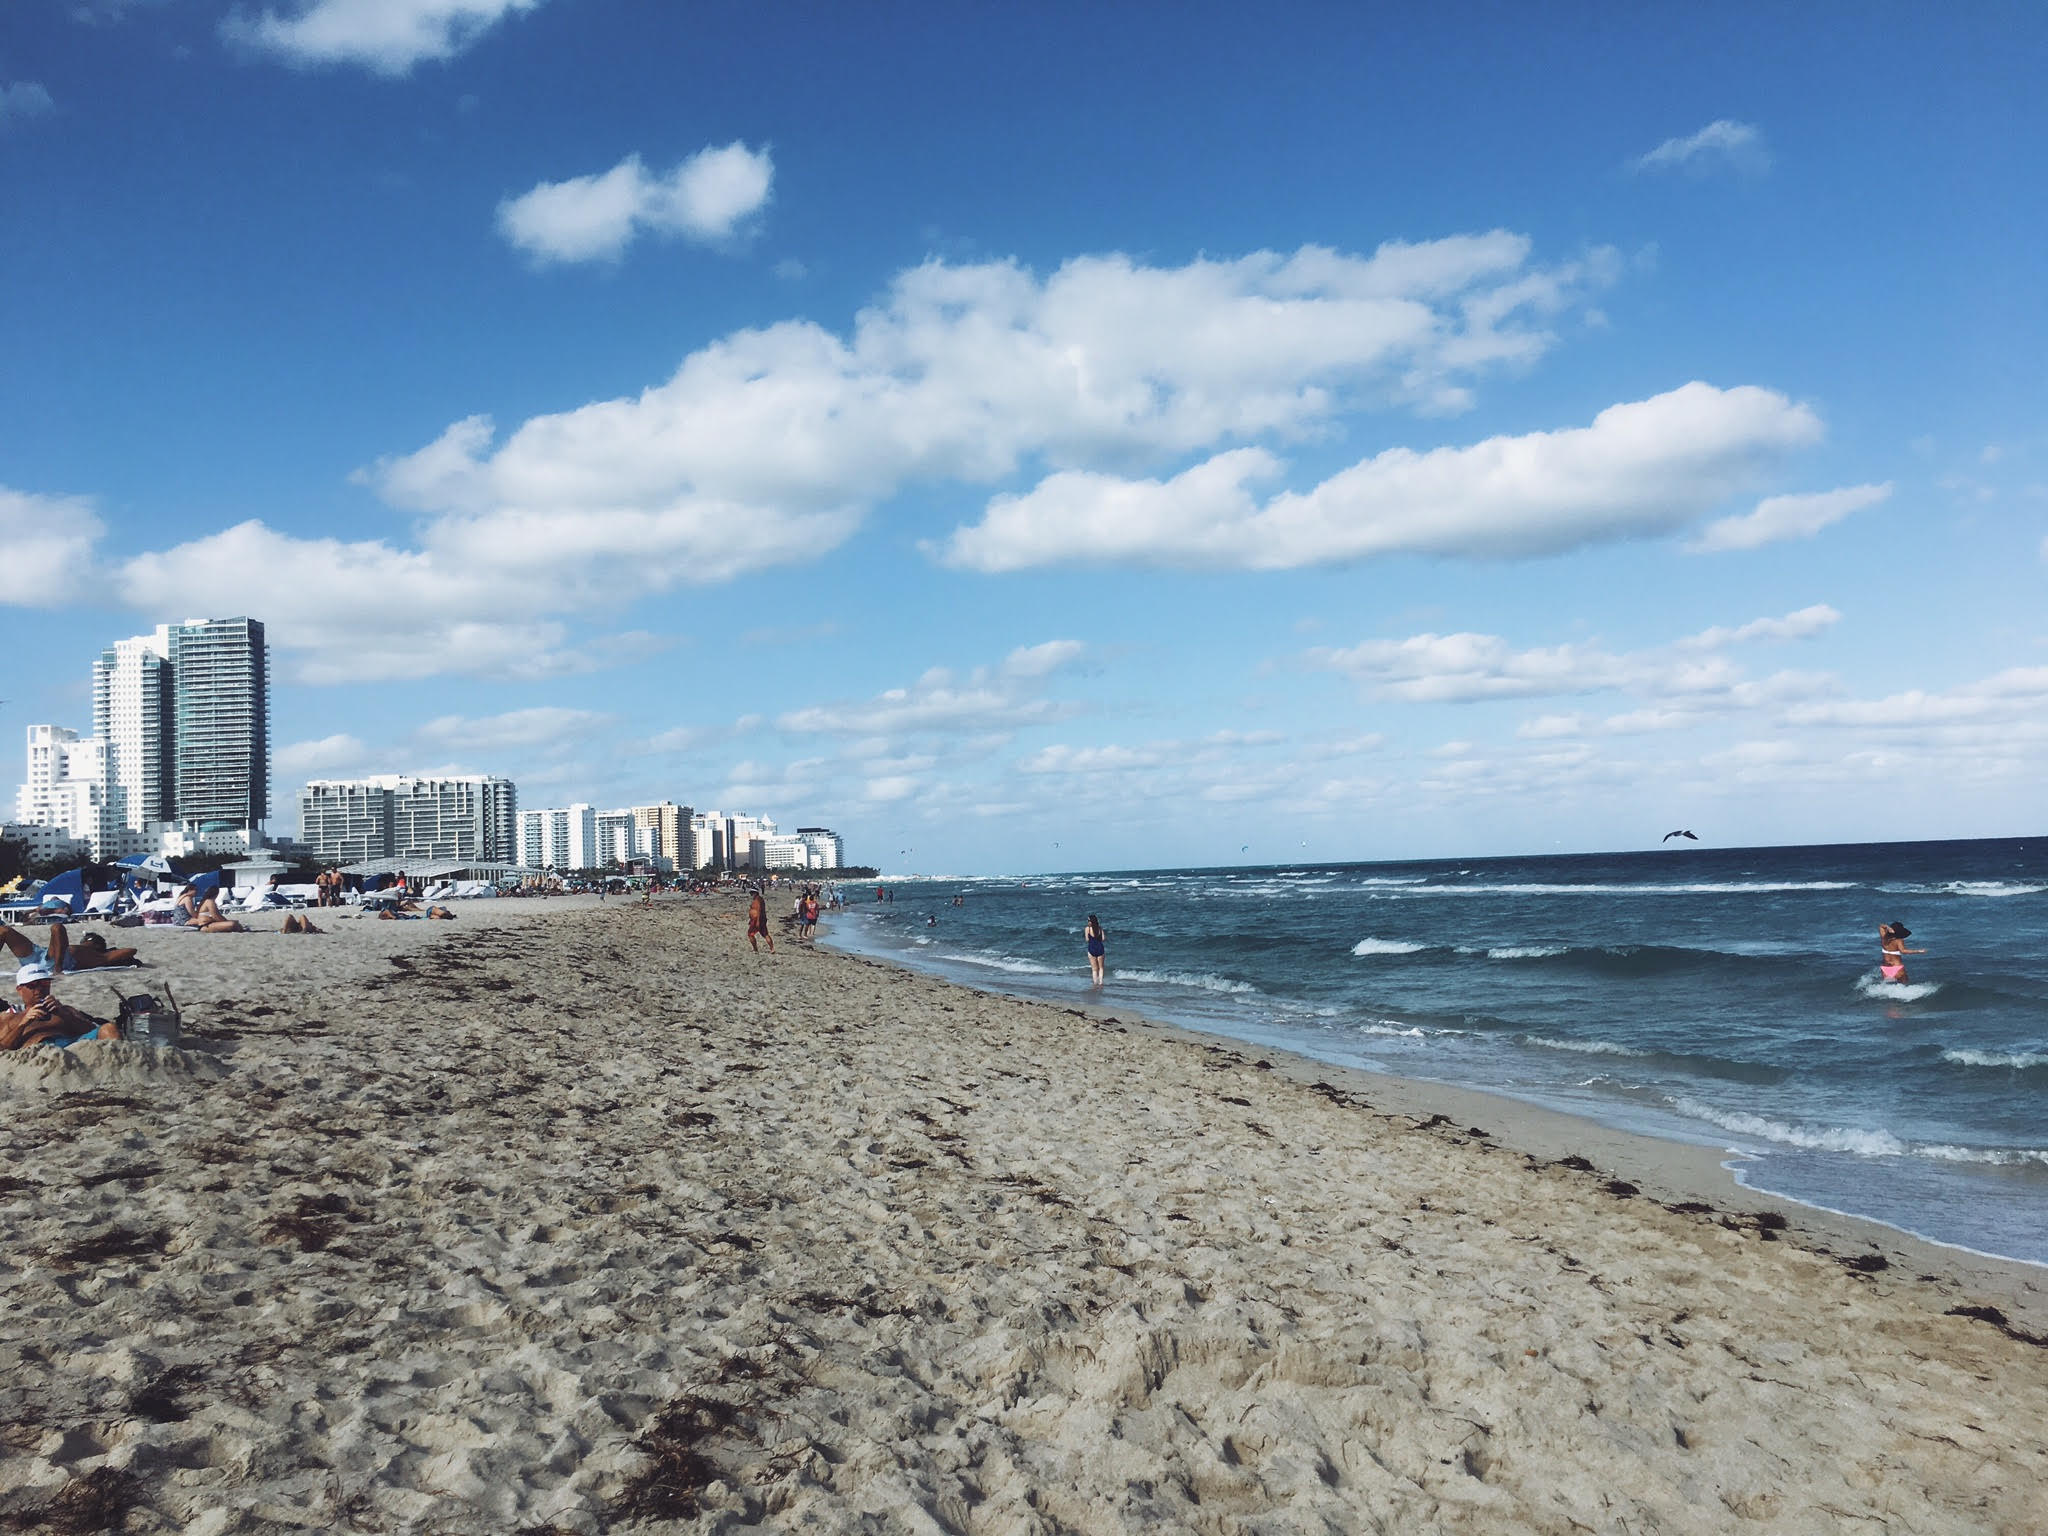 My Birthday Weekend Getaway in Miami |